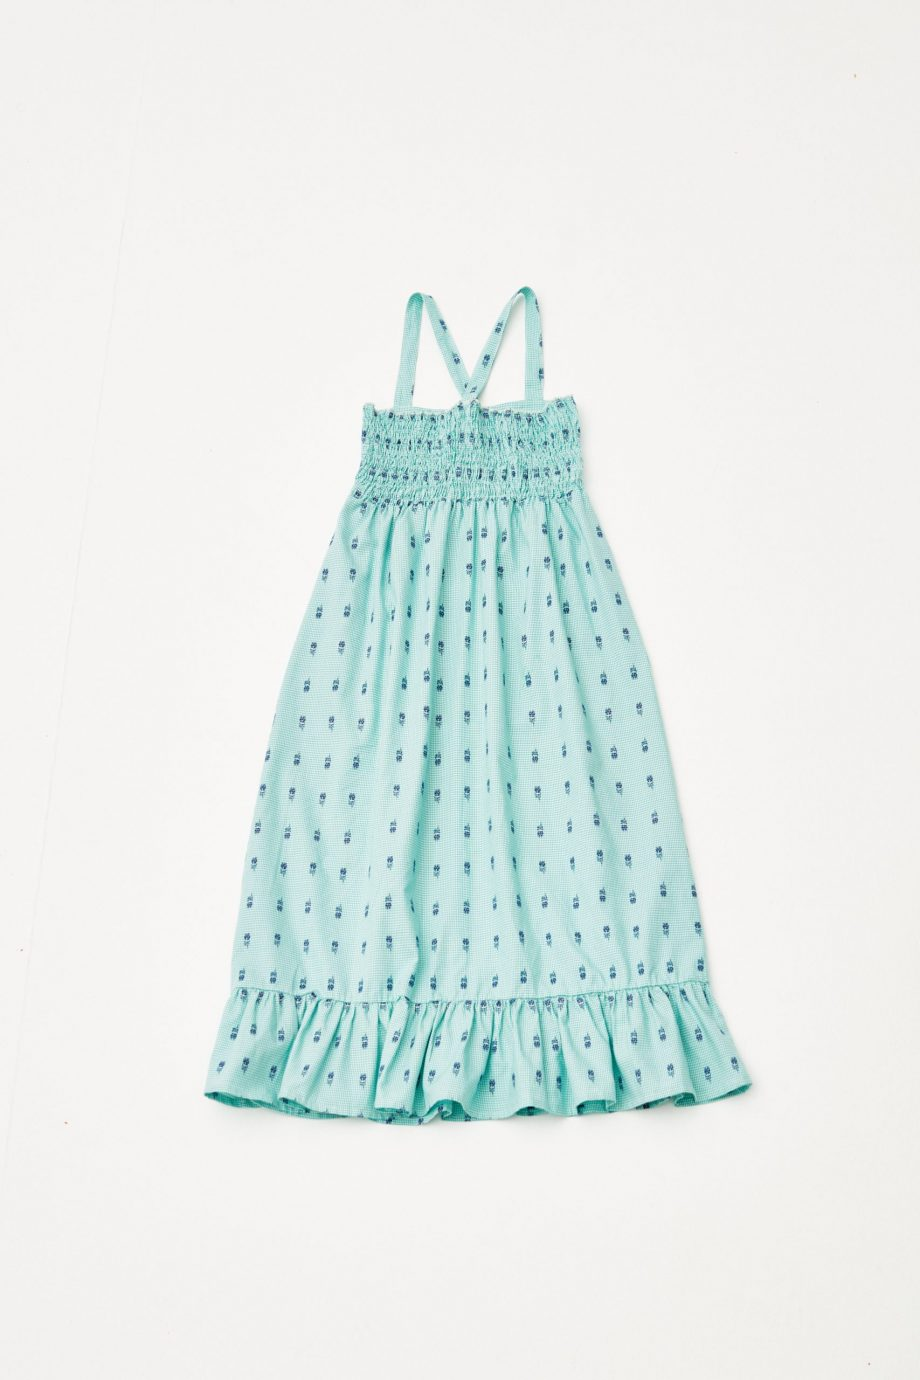 Embroidered Flowers Dress back